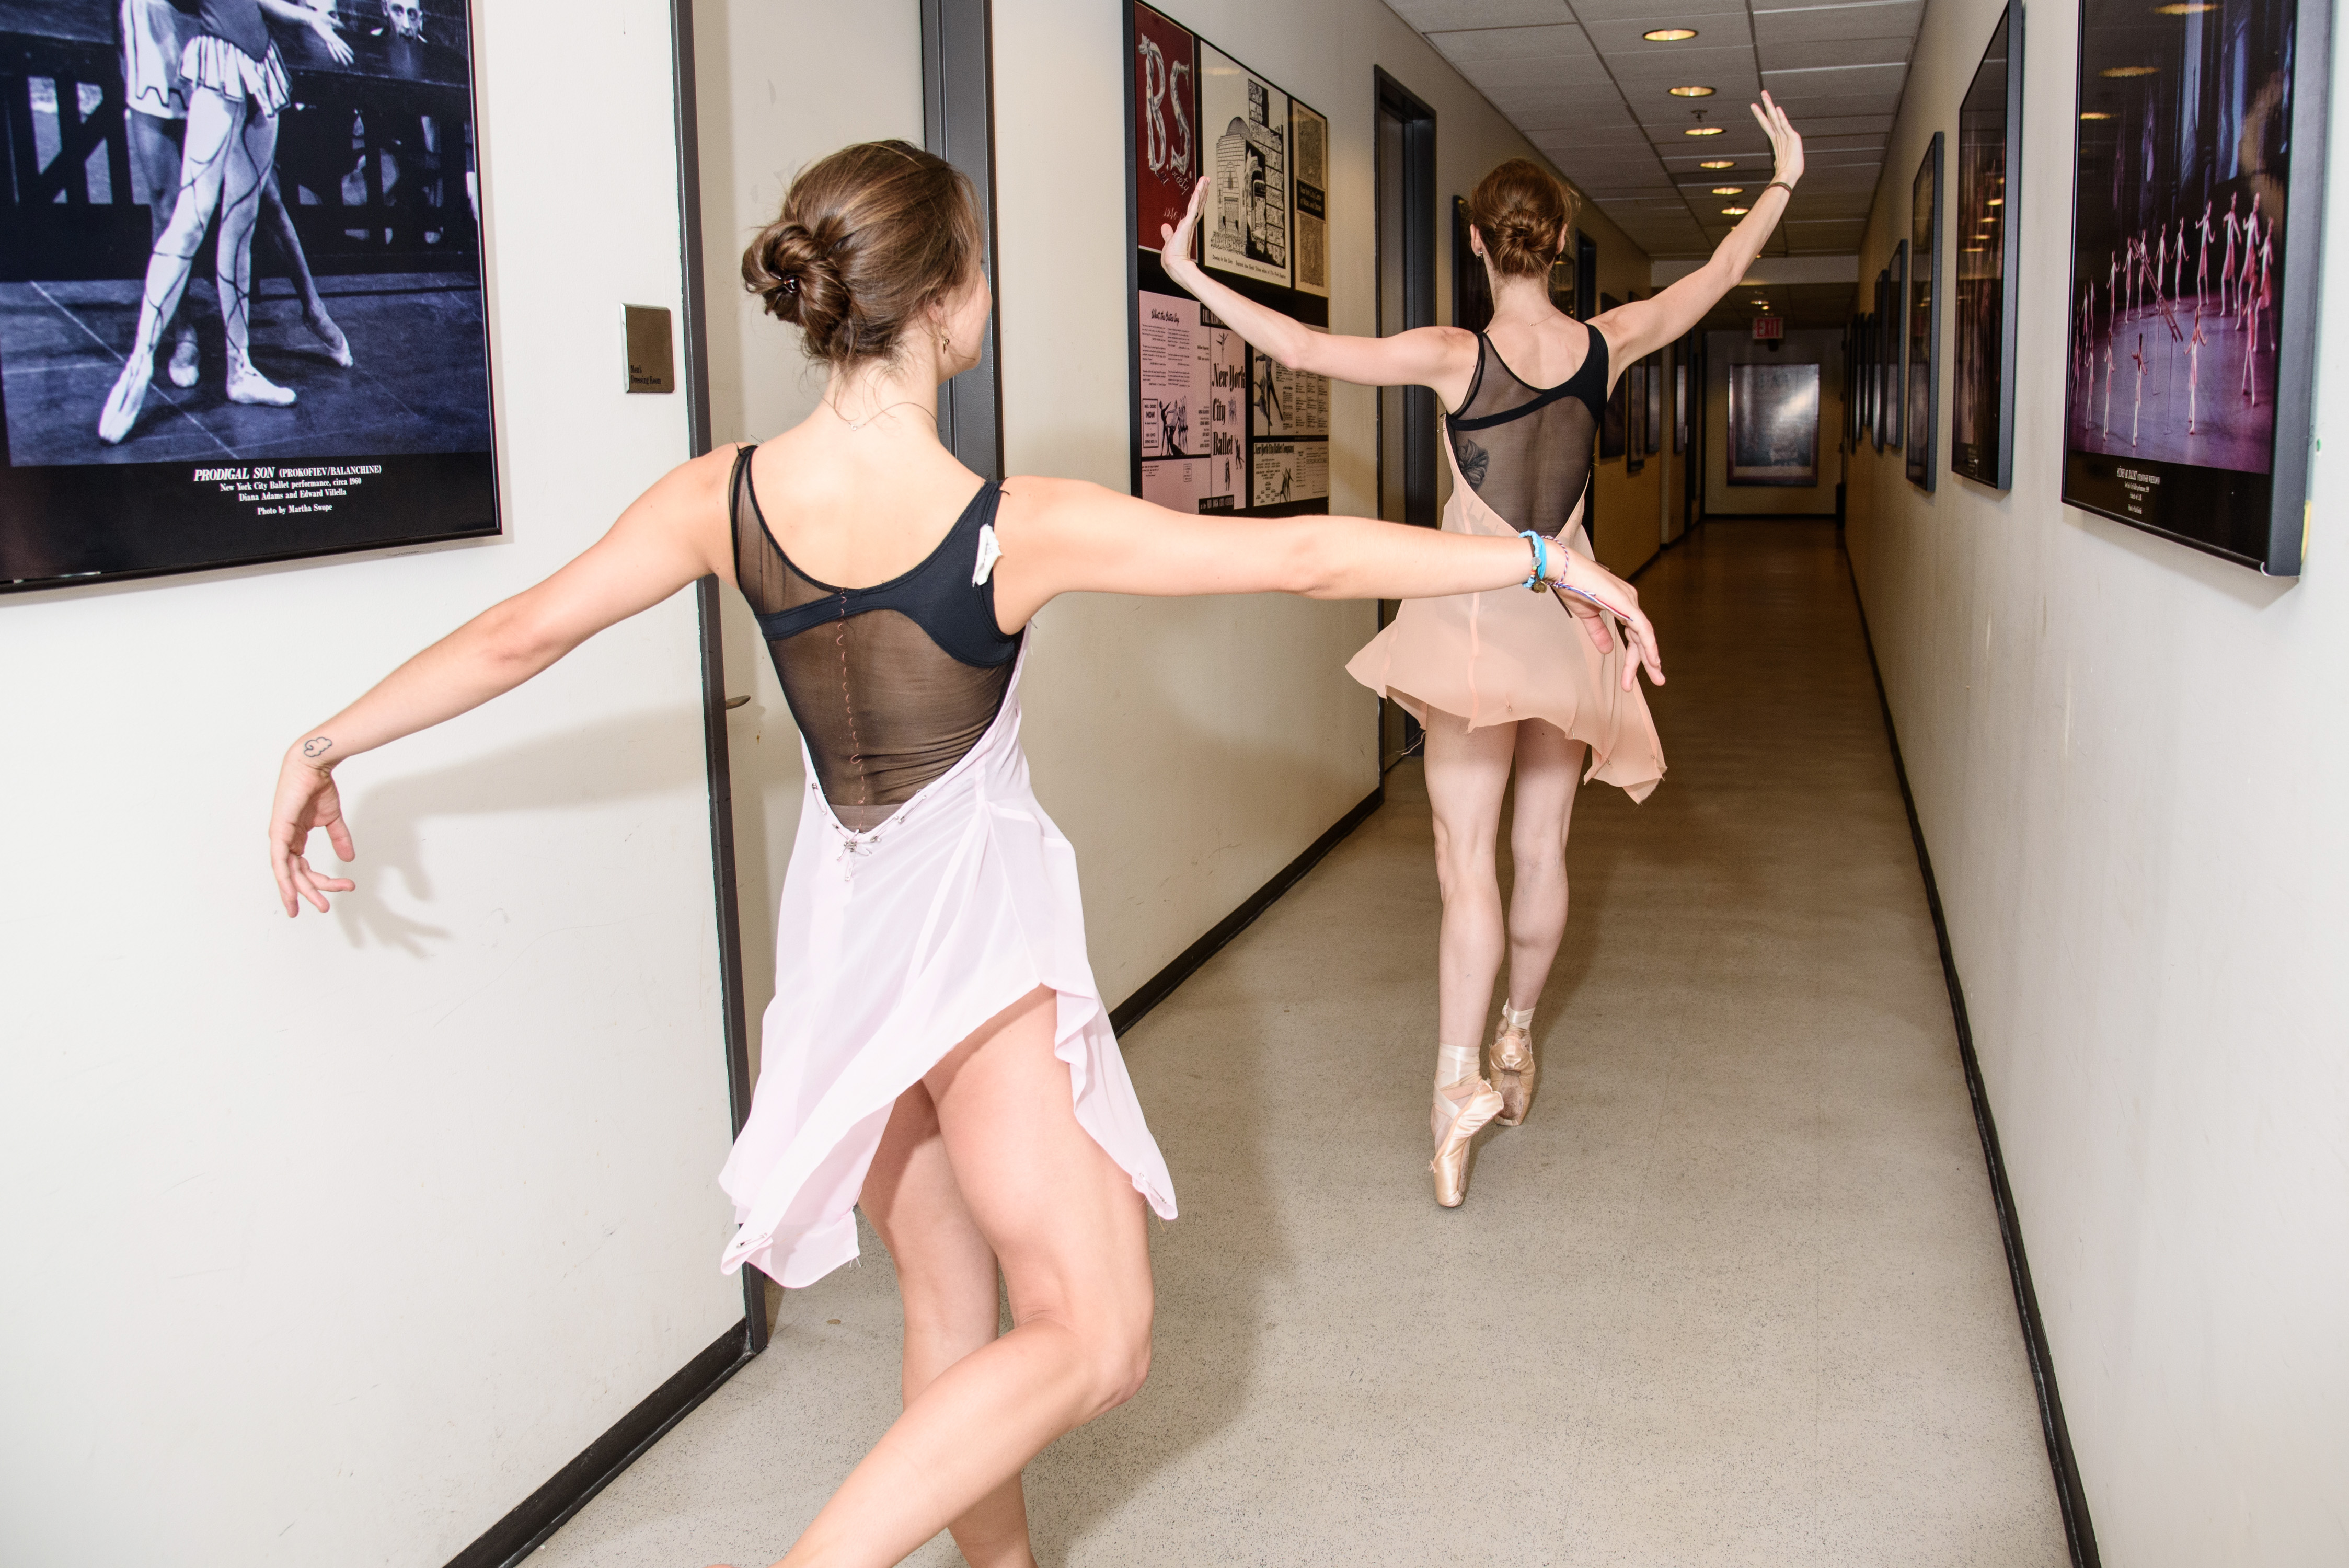 Indiana Woodward and Emilie Gerrity in the halls of NYCB.